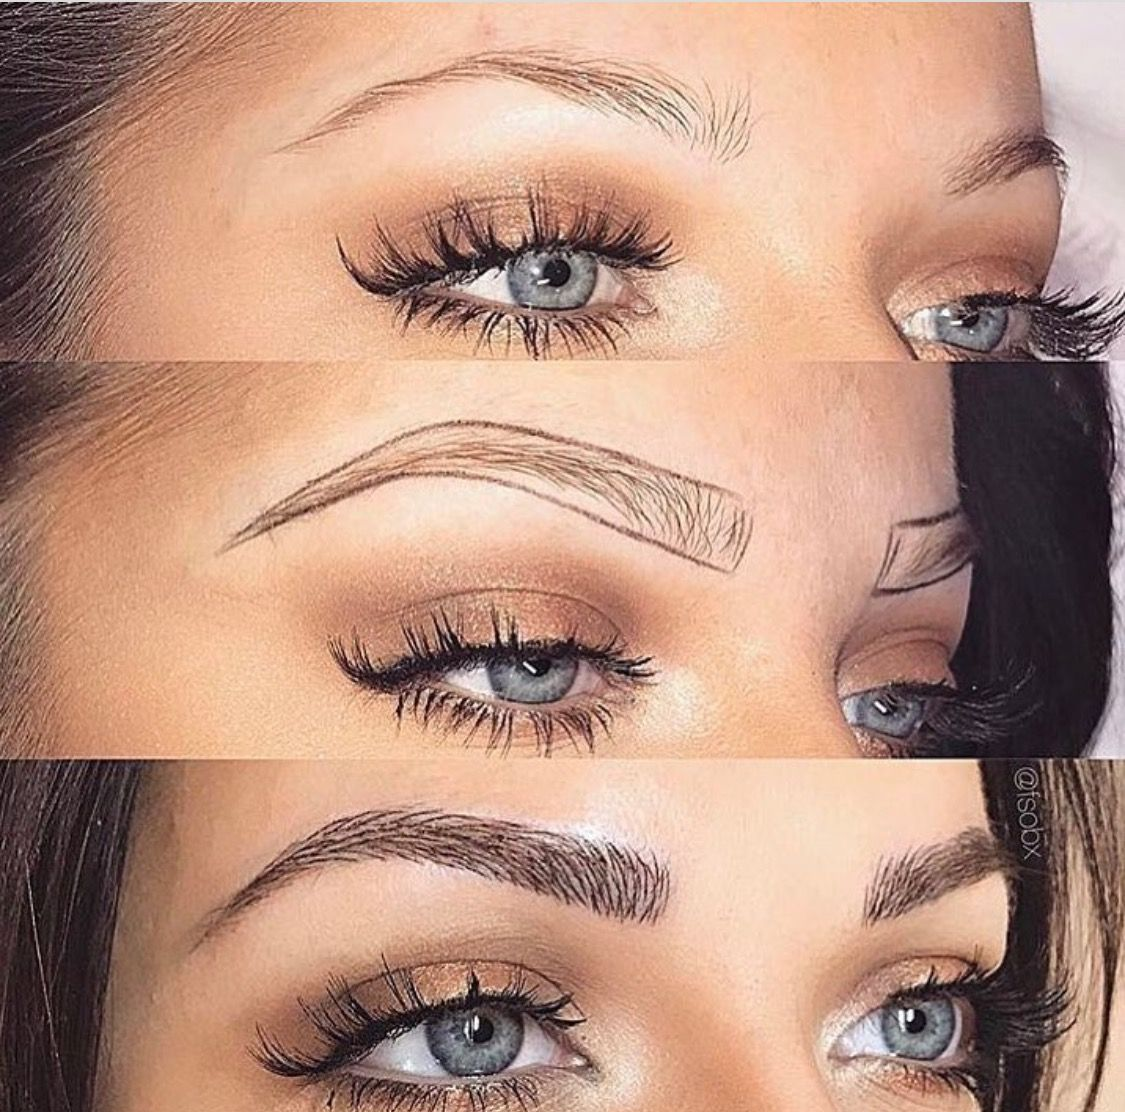 Microblading at SK Esthetics in Coral Springs Eyebrow